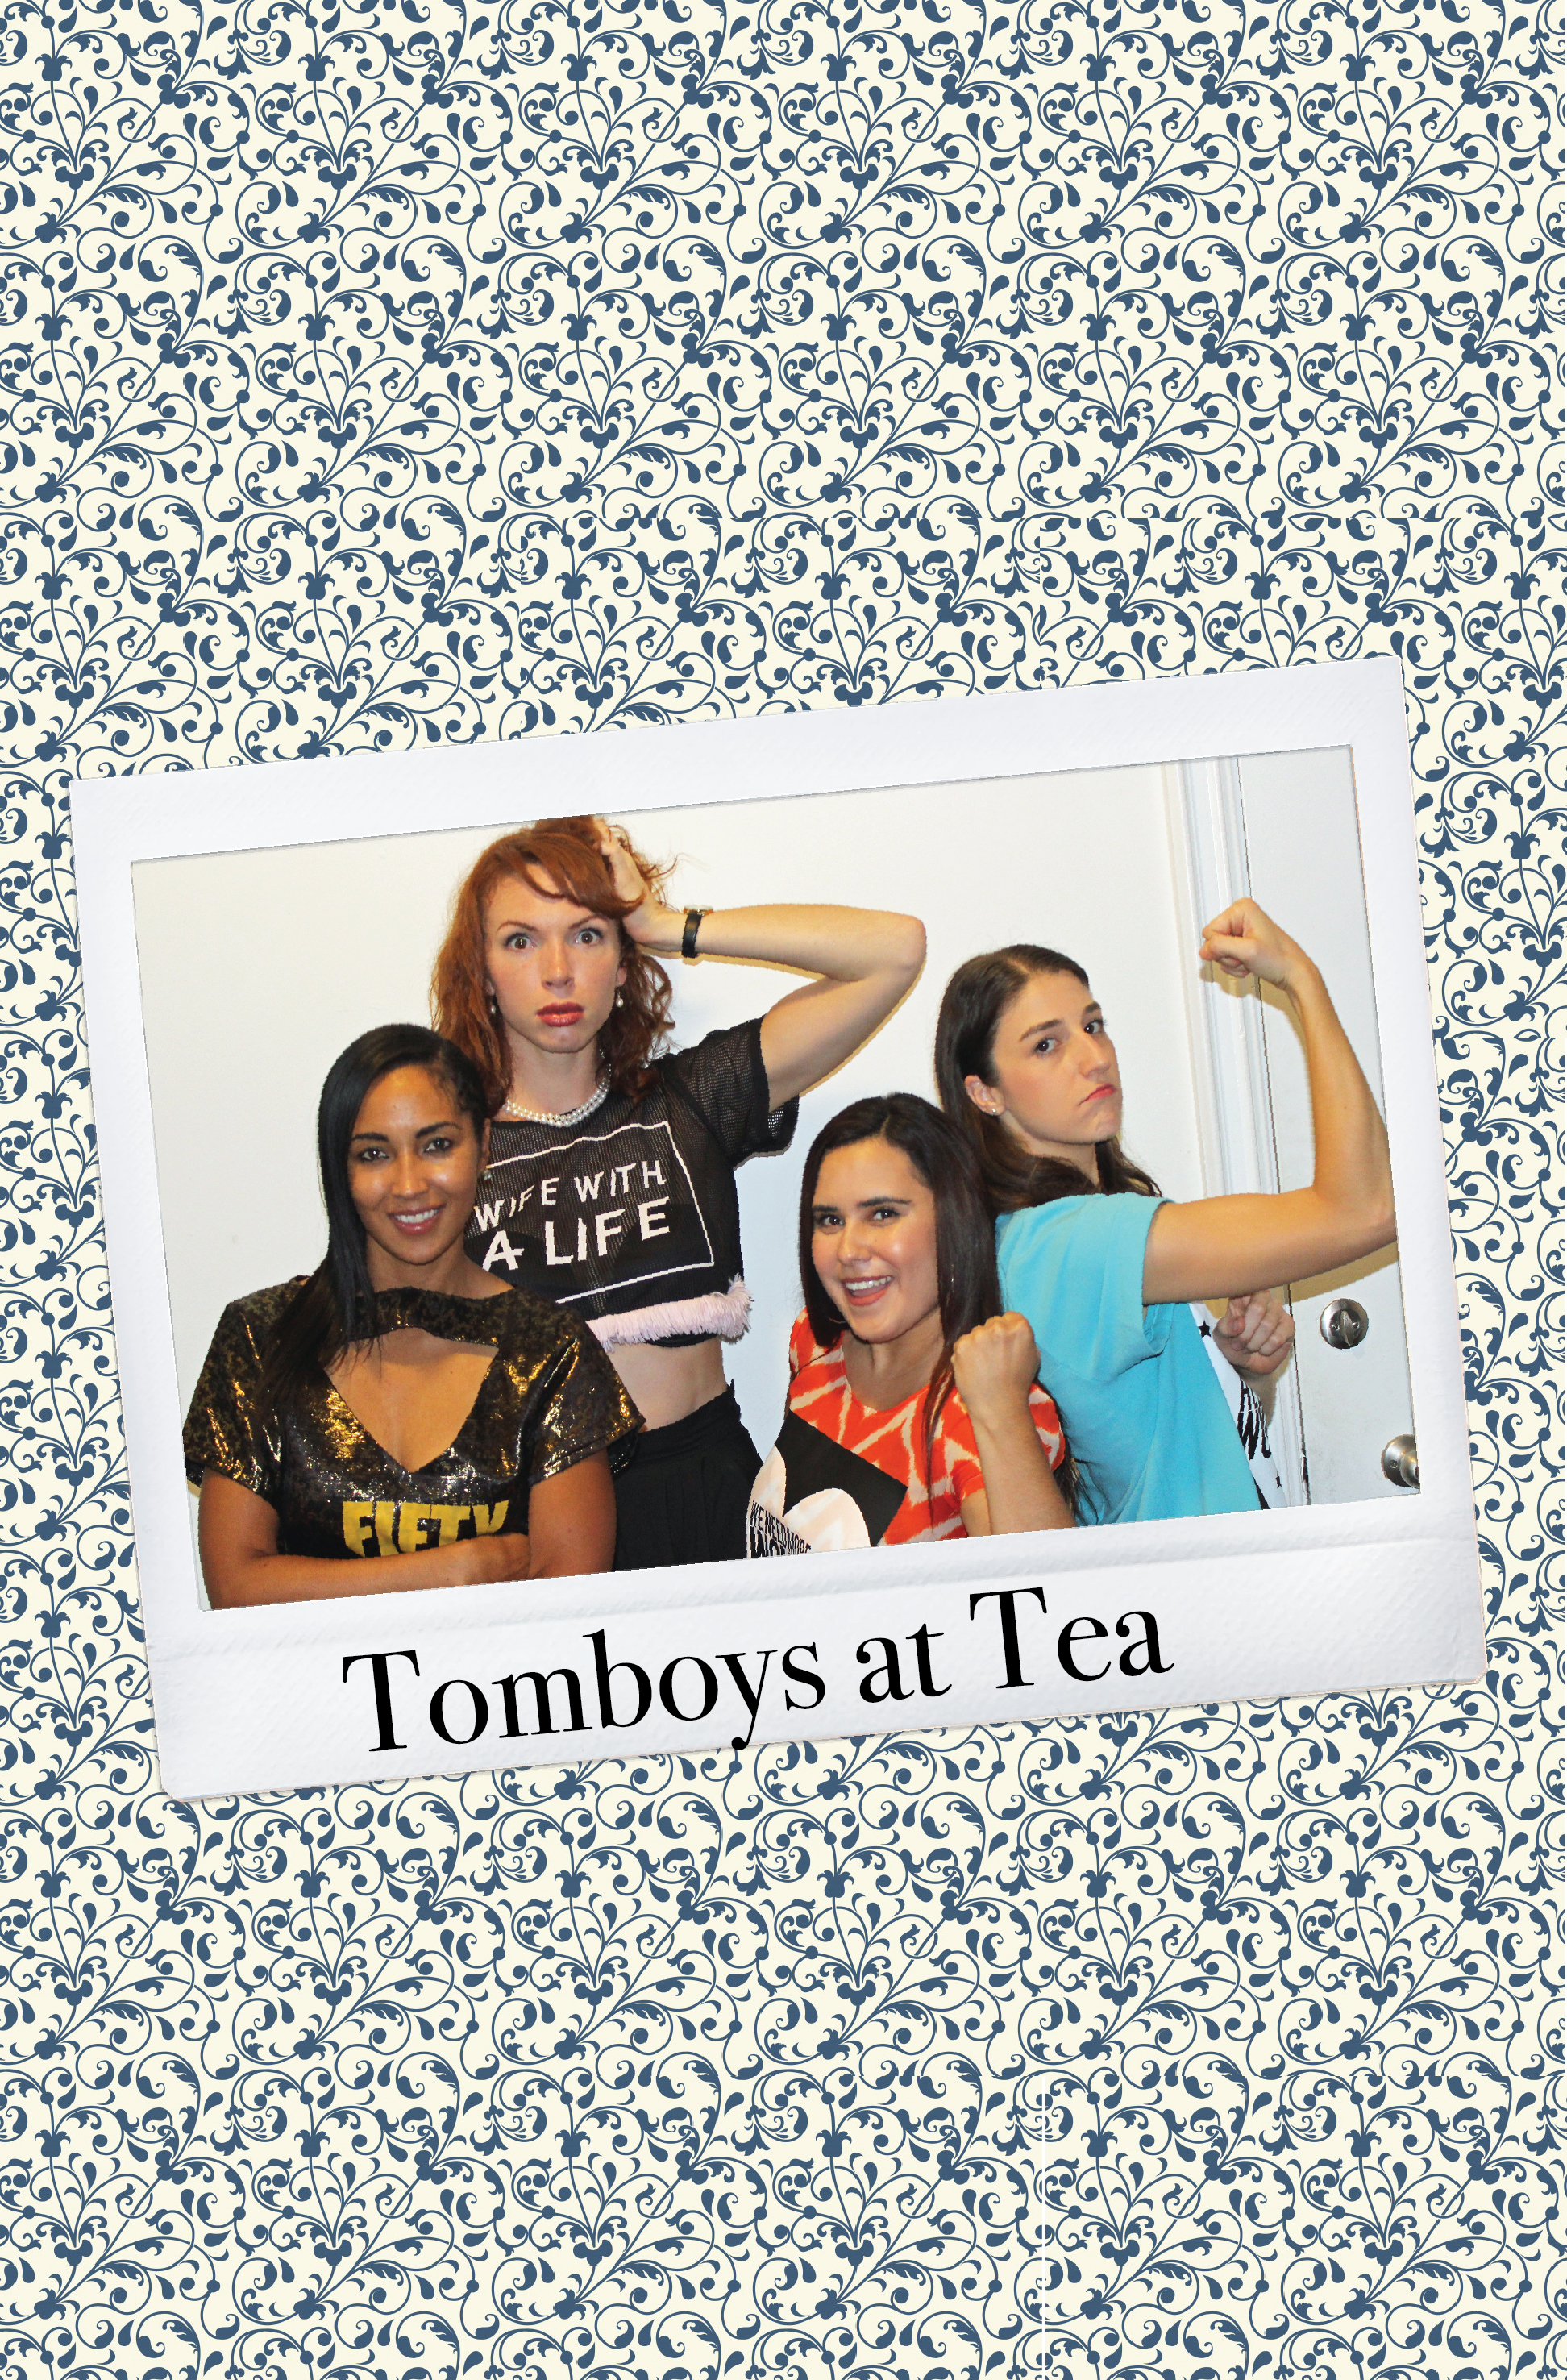 Mary Rachel Gardner, Tammy Brawner, Shannan Scarselletta, and Lily Becerra in Tomboys at Tea (2017)